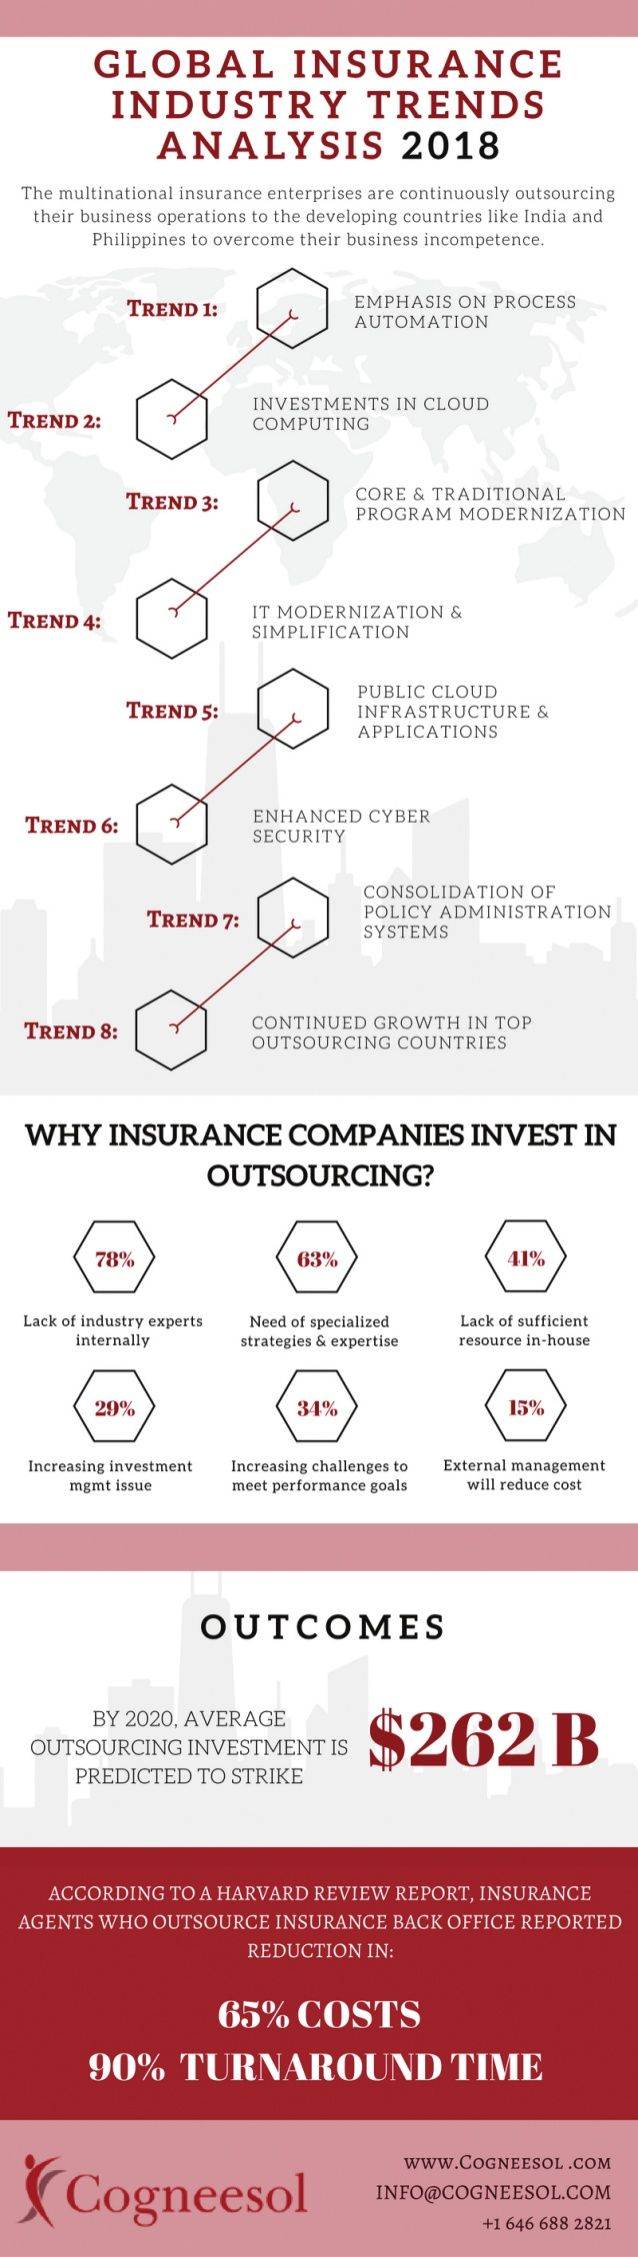 This Info Graphic Explains Why Insurance Companies At The Global Level Are Investing In The Latest Trends Of 2018 Insurance Industry Investing Insurance